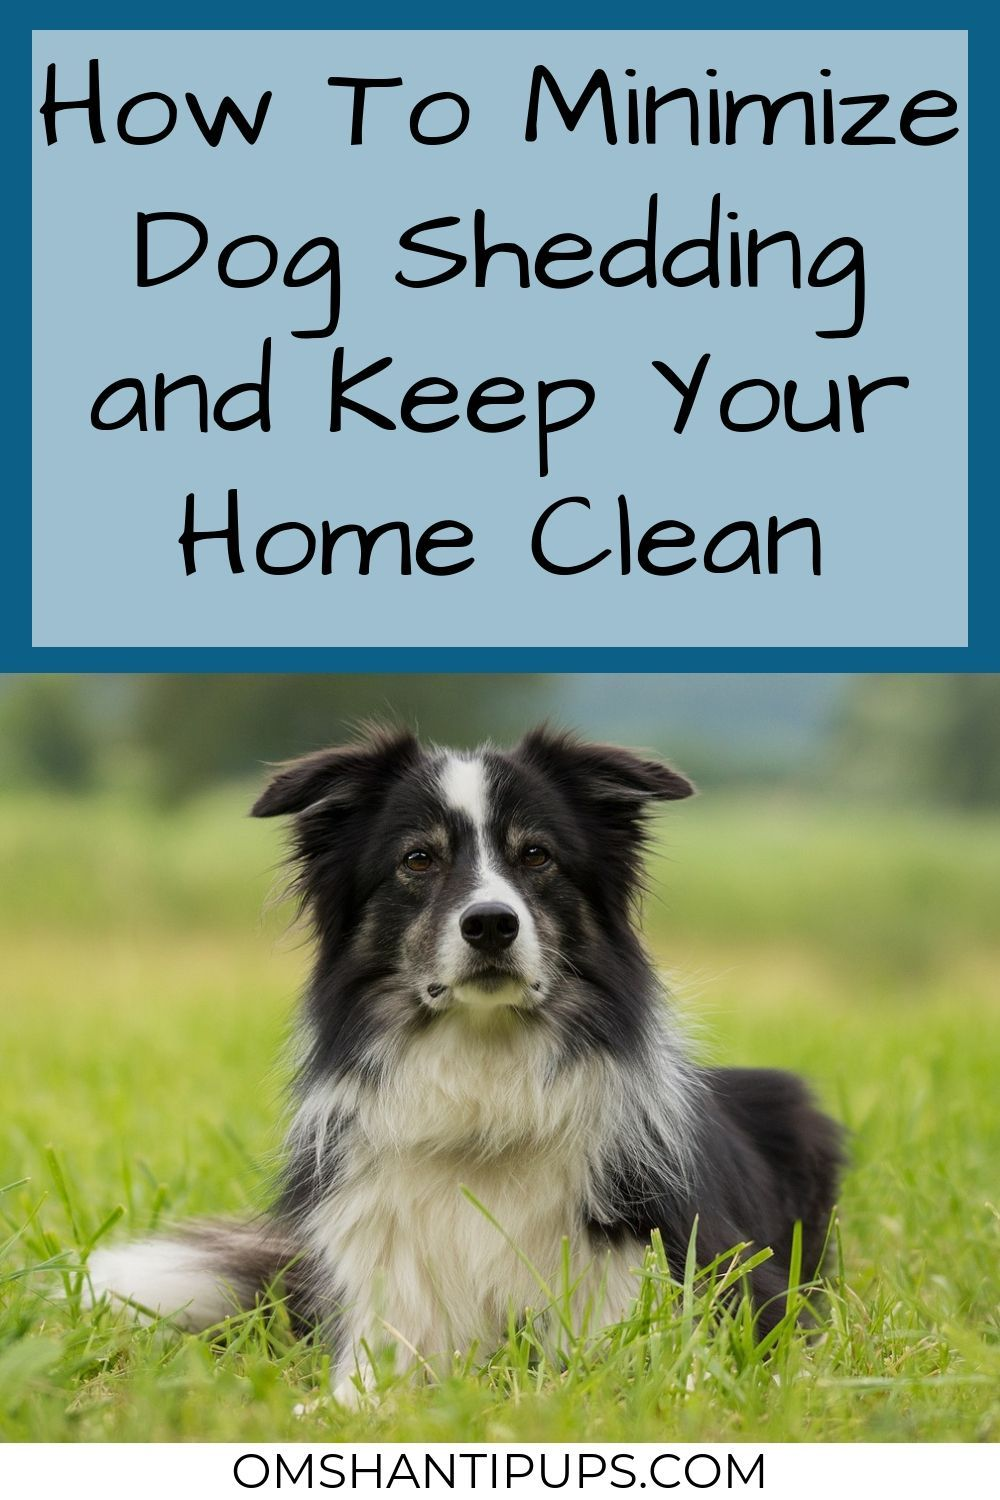 How To Minimize Dog Shedding And Keep A Home Clean Dog Care Tips